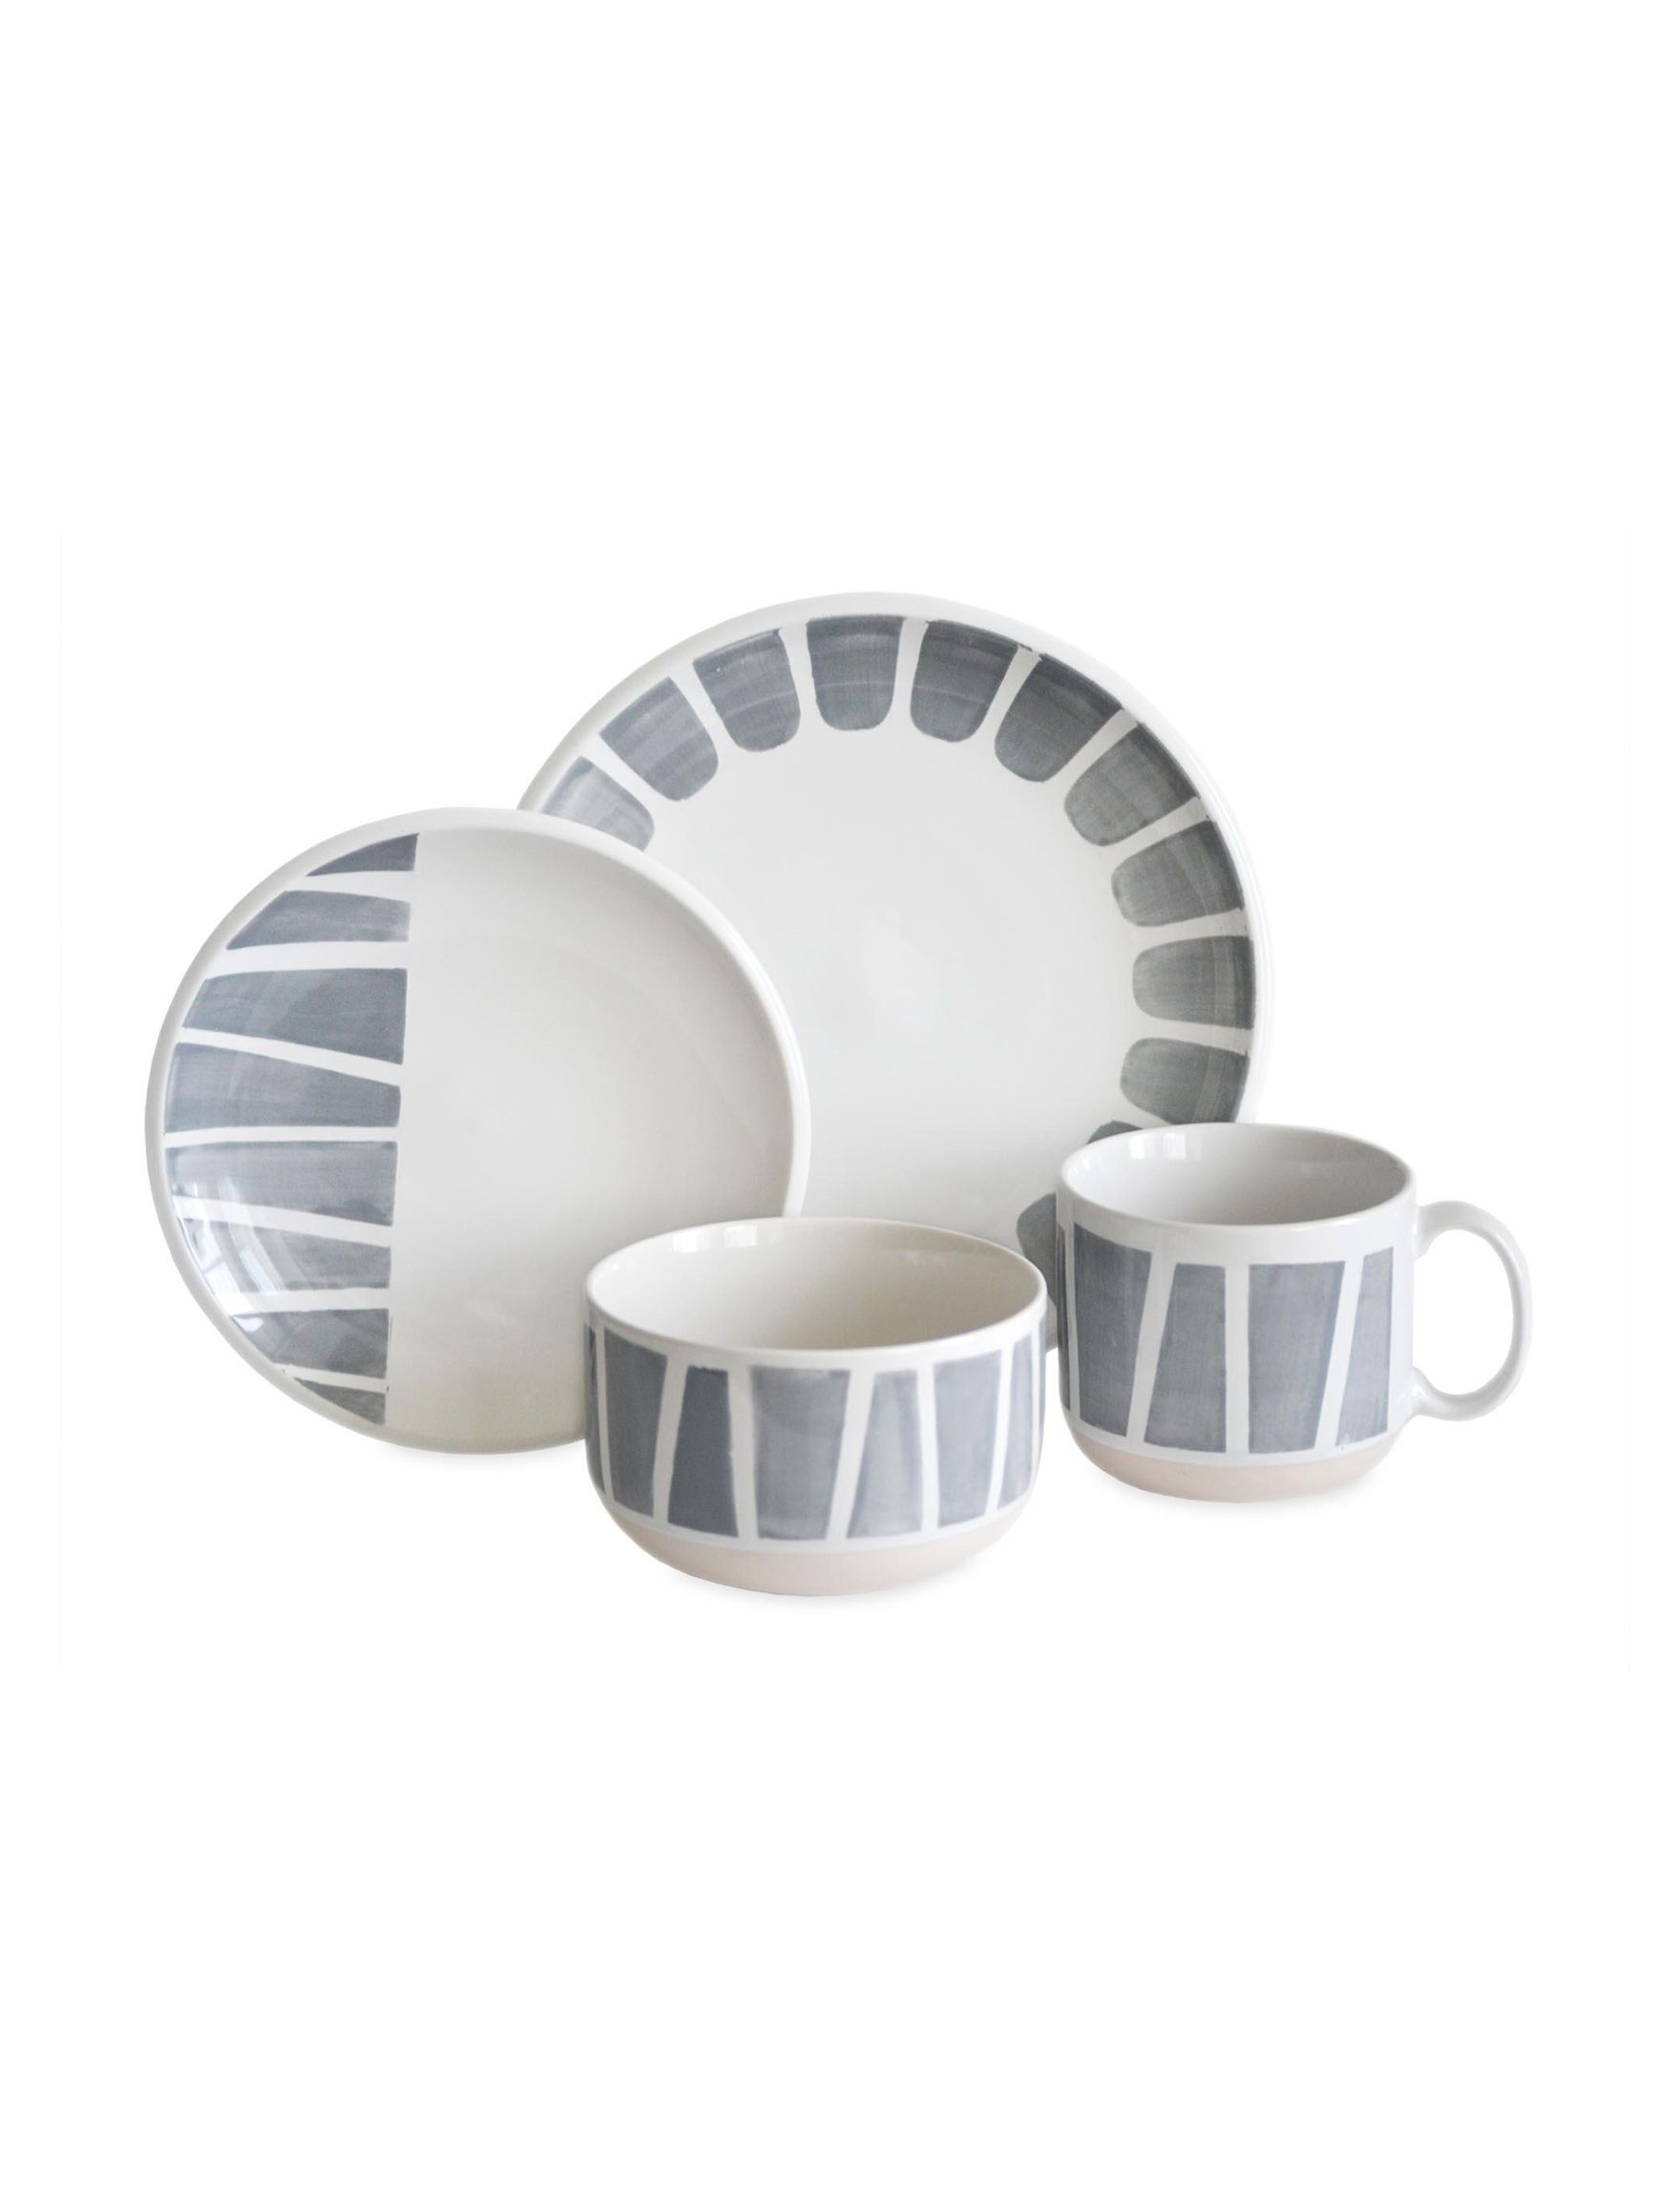 Shop today for Baum Bros Imports 16-pc. Staxx Dinnerware Set & deals ...